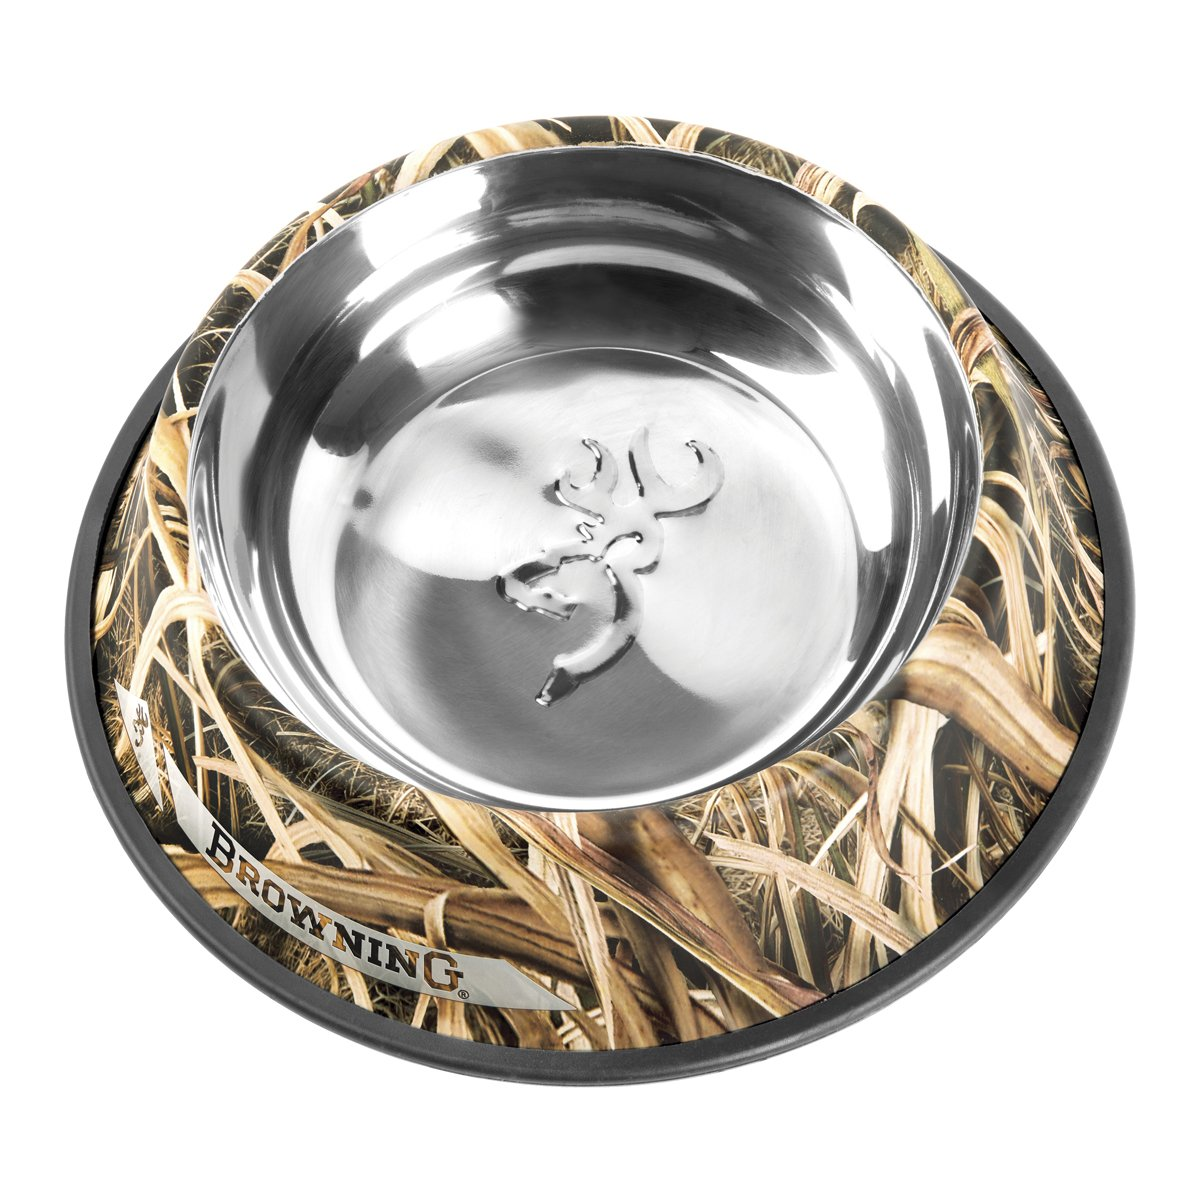 Browning Stainless Steel Pet Dish, Large, Shadow Grass Blades by Browning